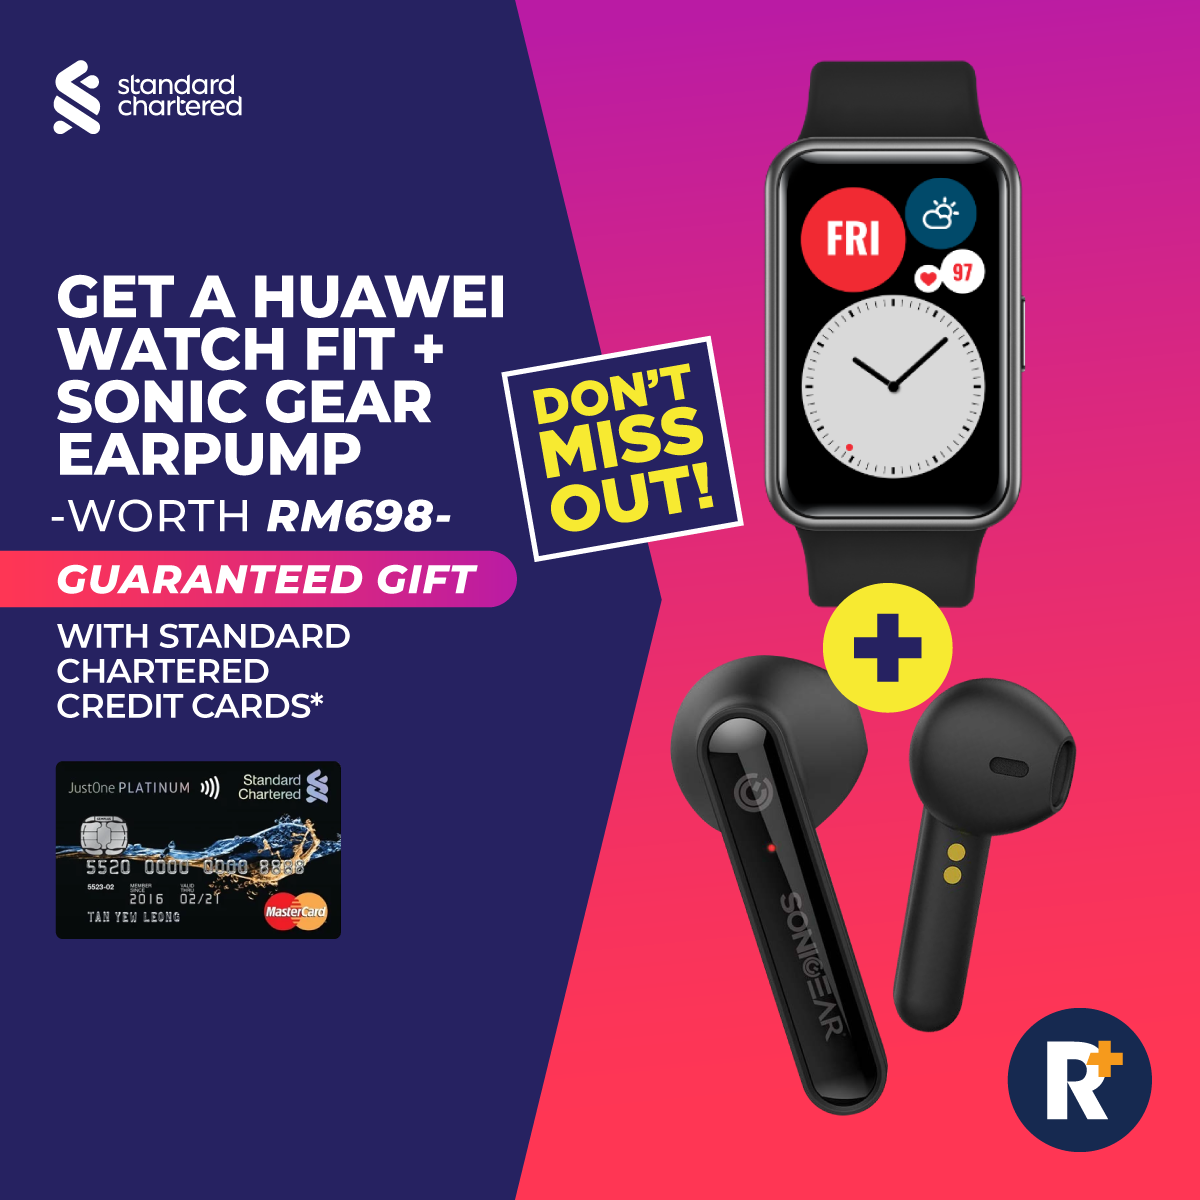 Huawei Watch Fit Smartwatch - Sonic Gear Bluetooth Earbuds - Standard Chartered Credit Card PR...png